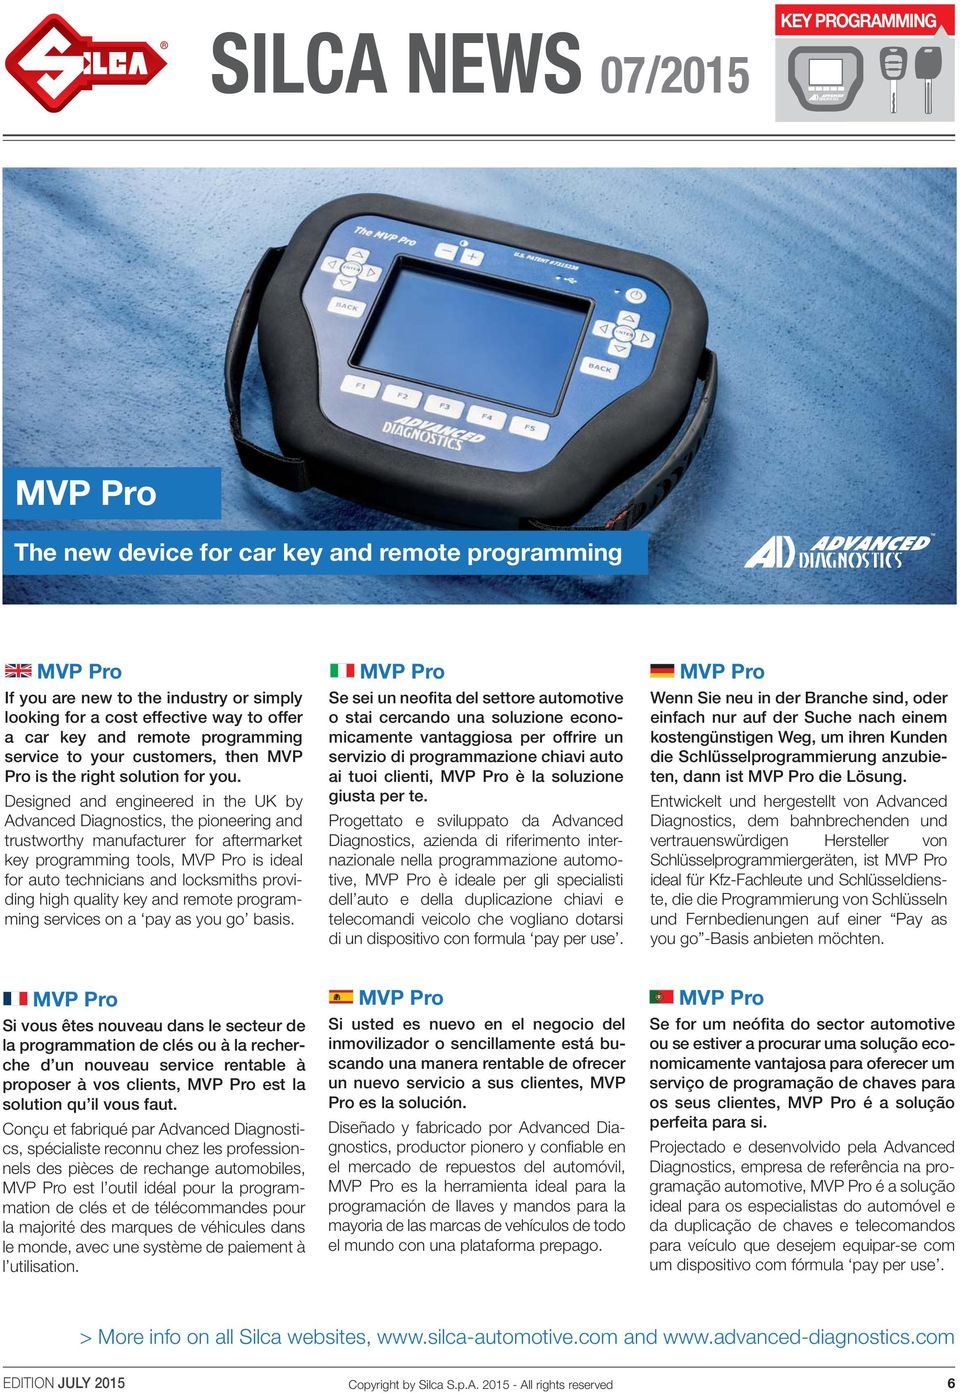 Designed and engineered in the UK by Advanced Diagnostics, the pioneering and trustworthy manufacturer for aftermarket key programming tools, MVP Pro is ideal for auto technicians and locksmiths